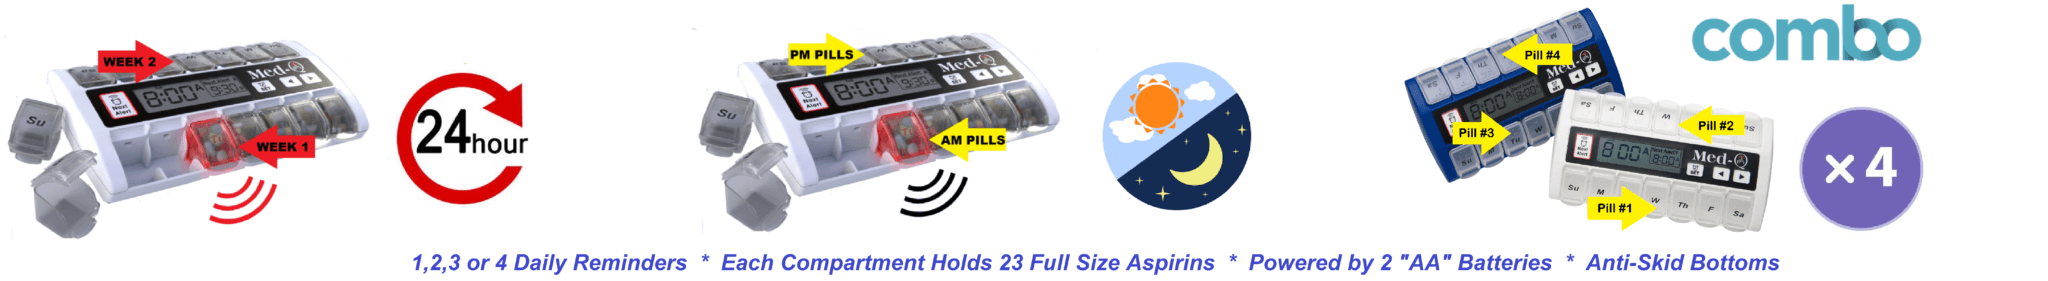 Med-Q SMART PILL BOX with alarm